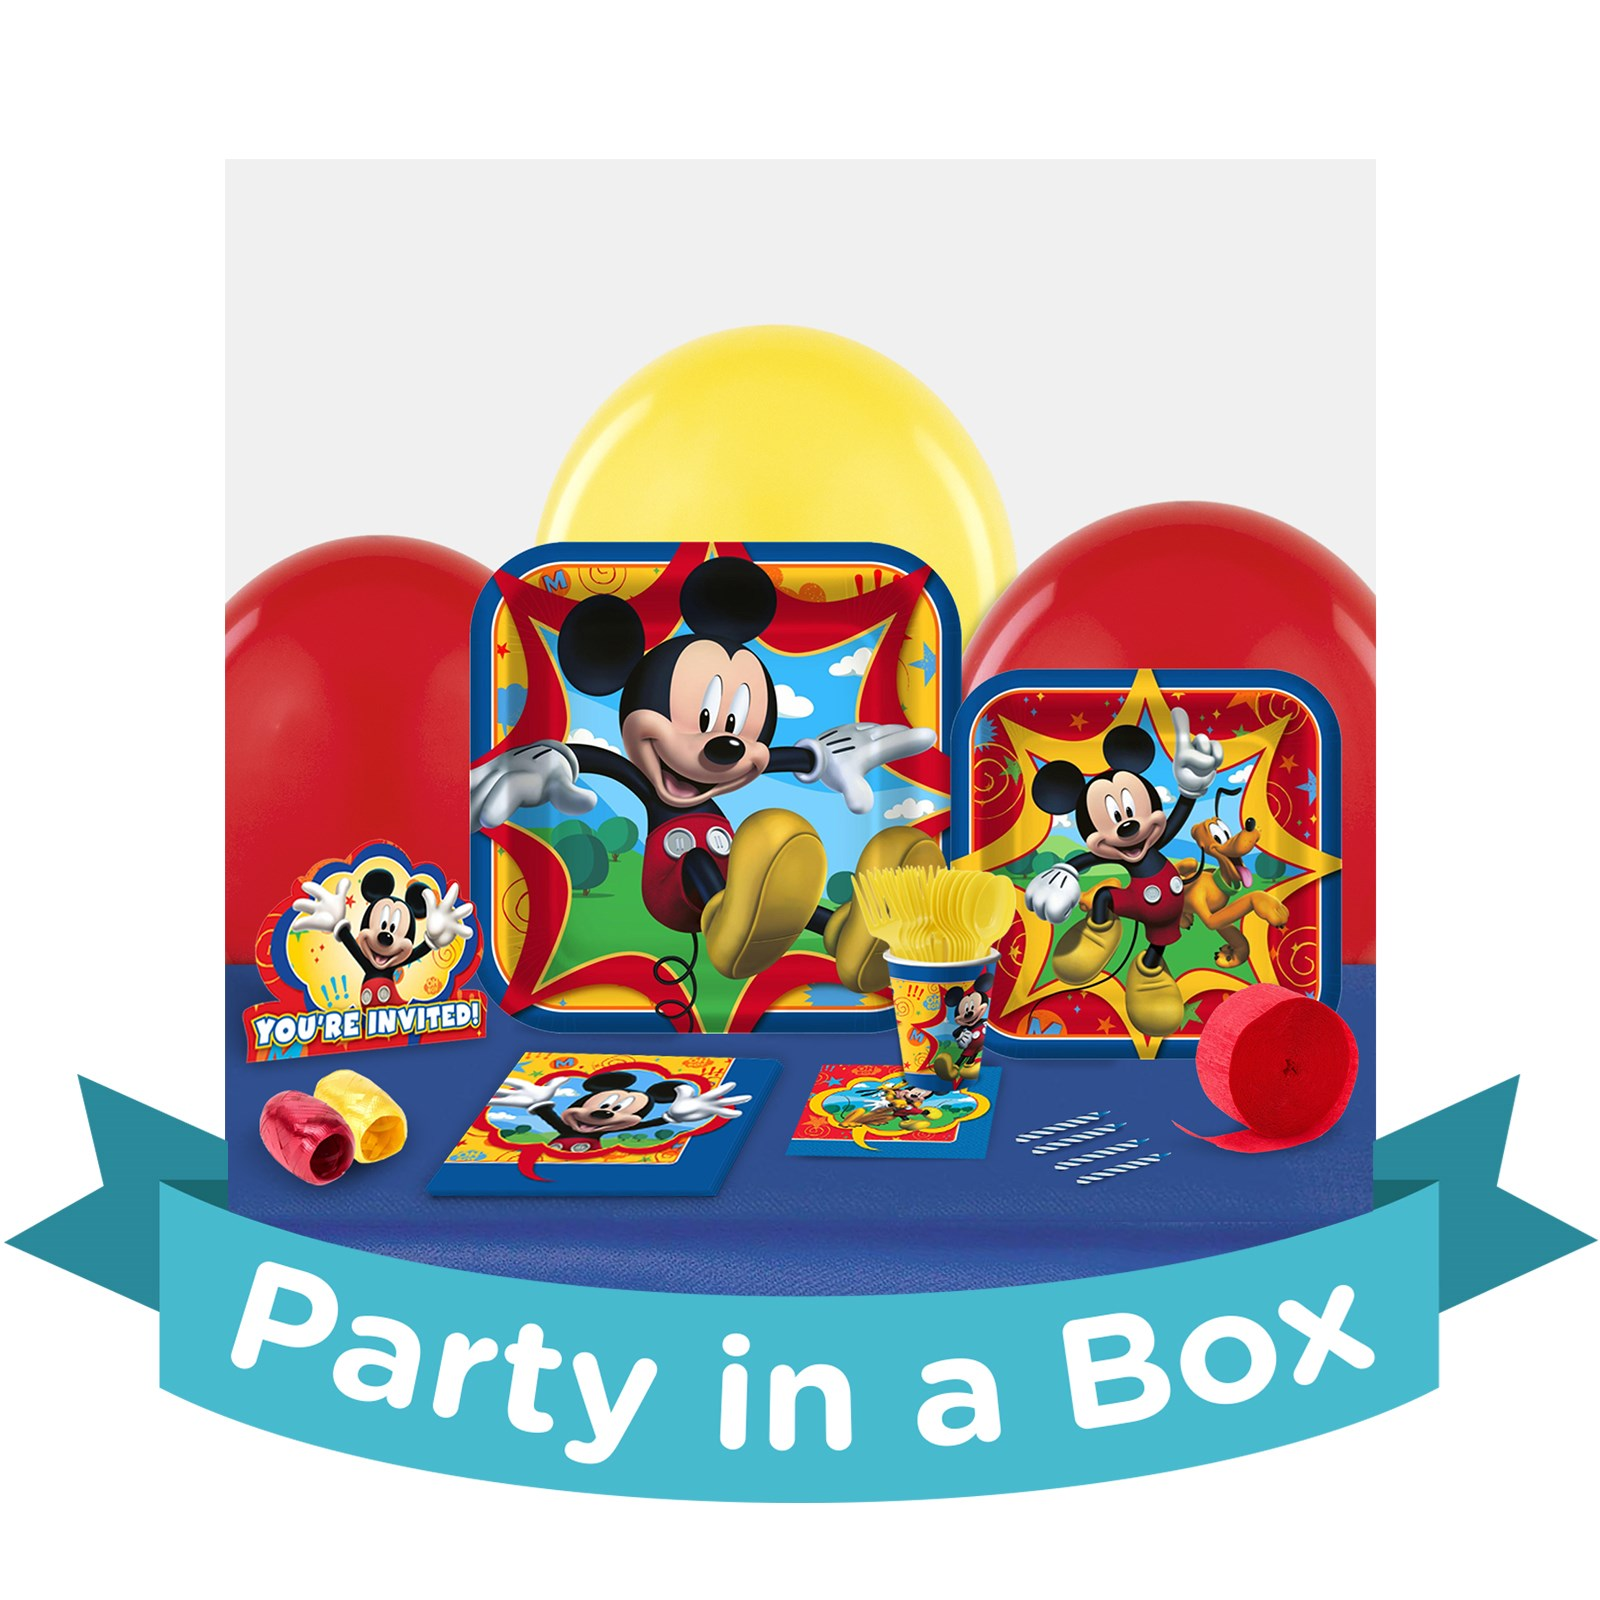 Mickey 1st Birthday Party in a Box - Ultimate - 8 Guests